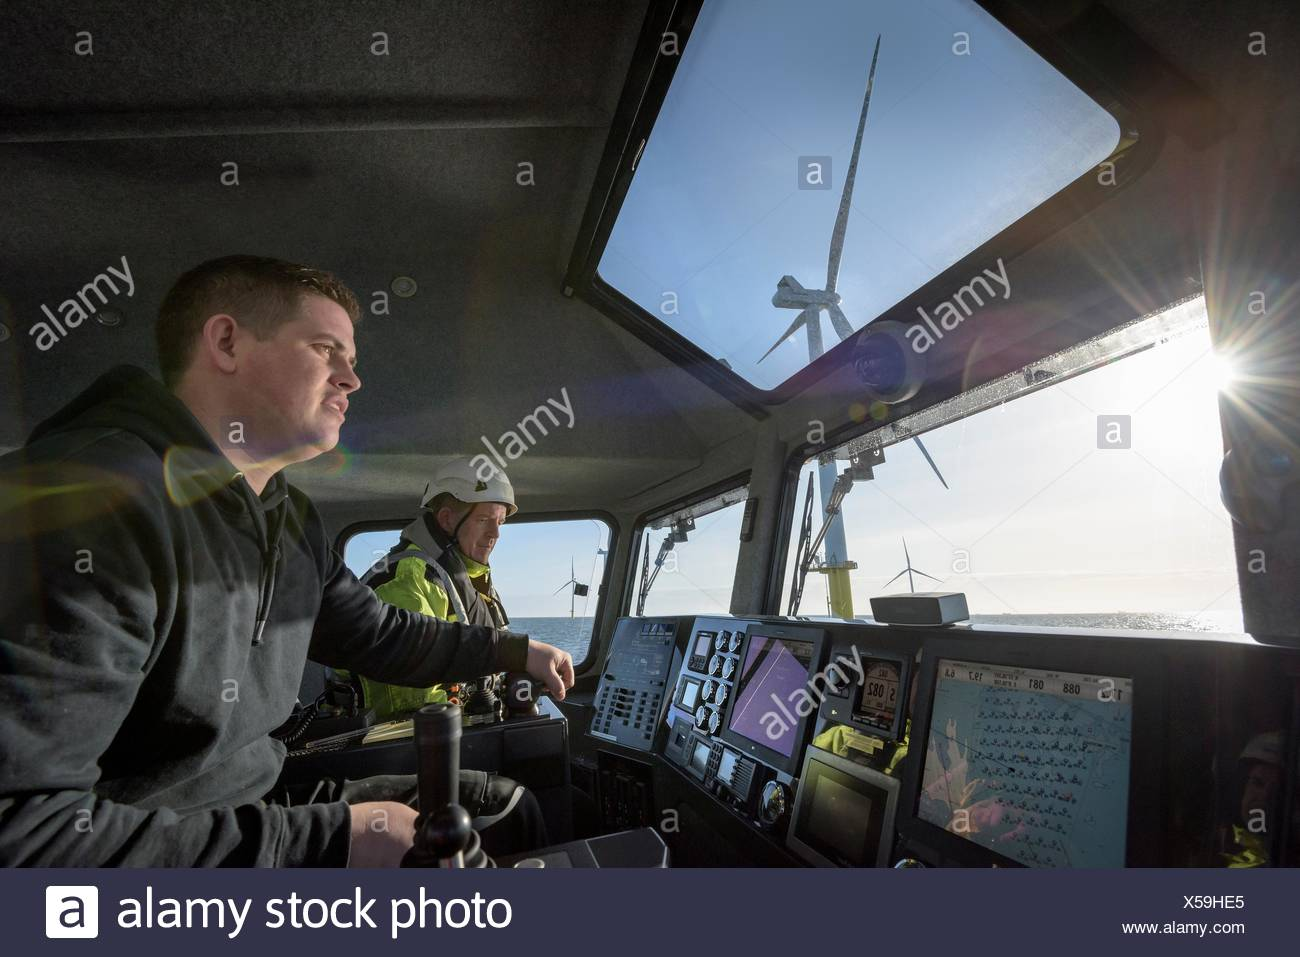 Captain and mate steer boat through offshore wind farm - Stock Image